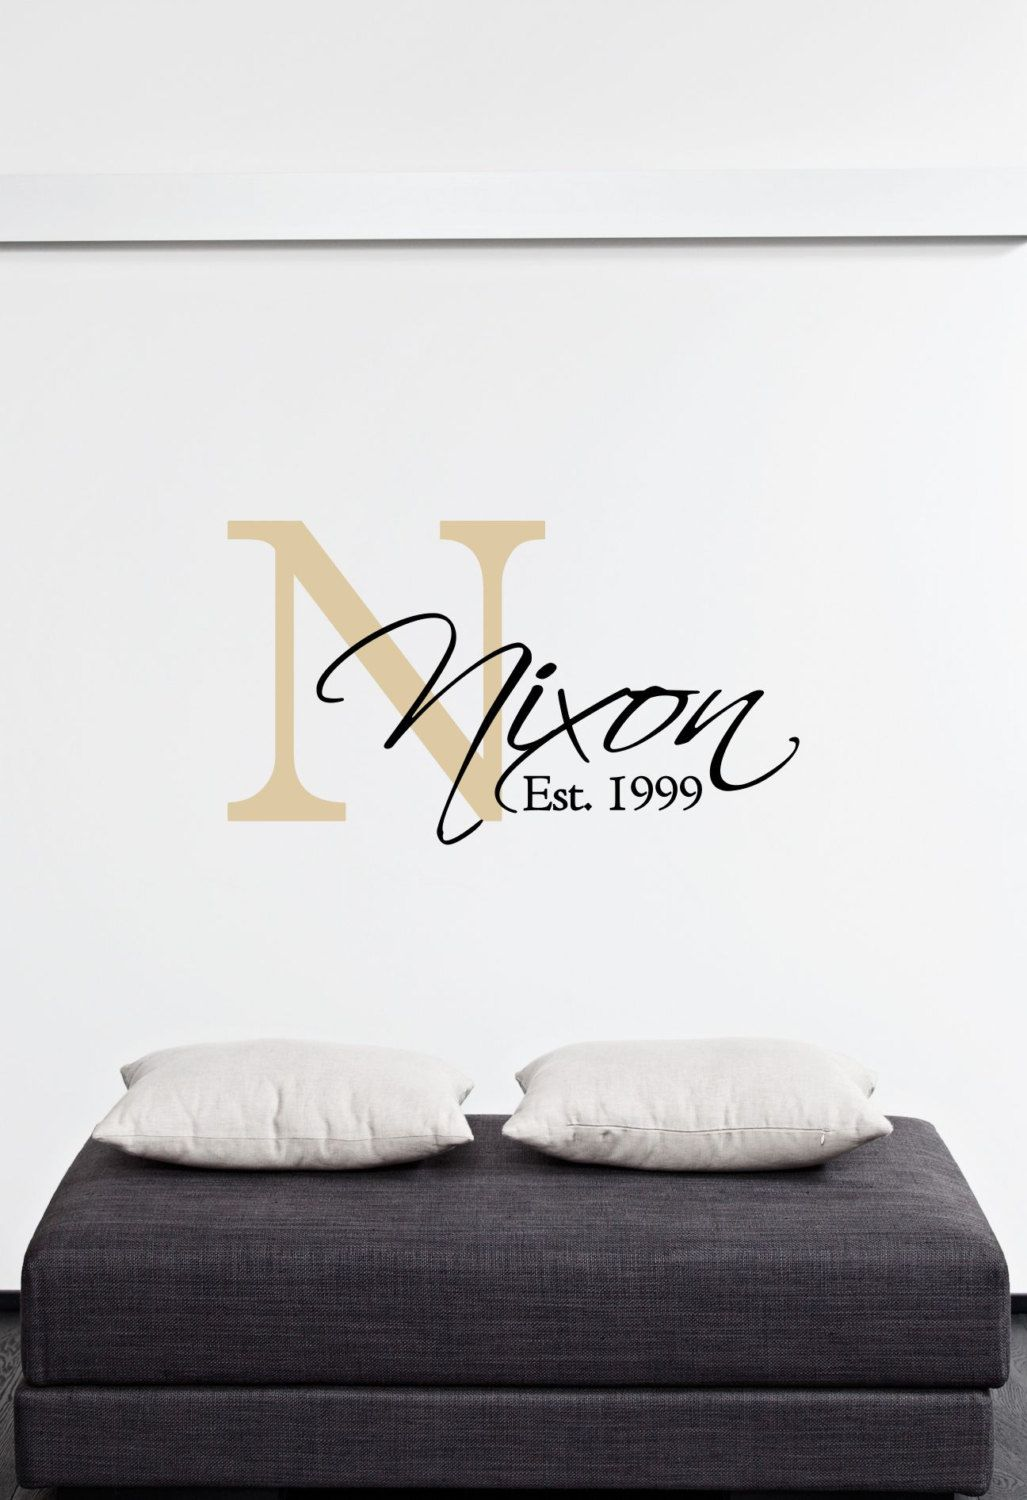 Custom family last name  monogram vinyl wall art decal also rh pinterest